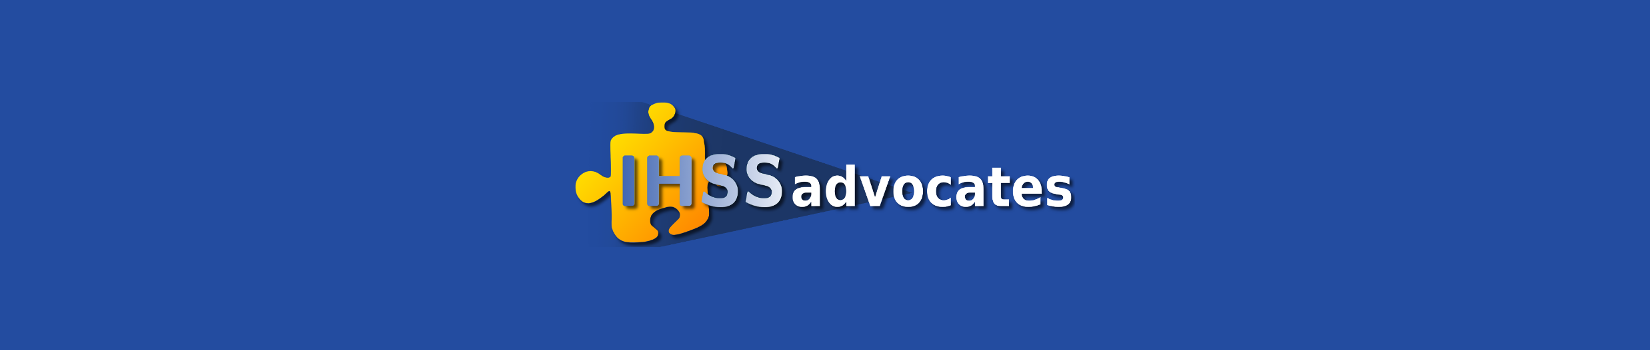 IHSSadvocates: Improving the Developmentally Disabled Community One Family at a Time